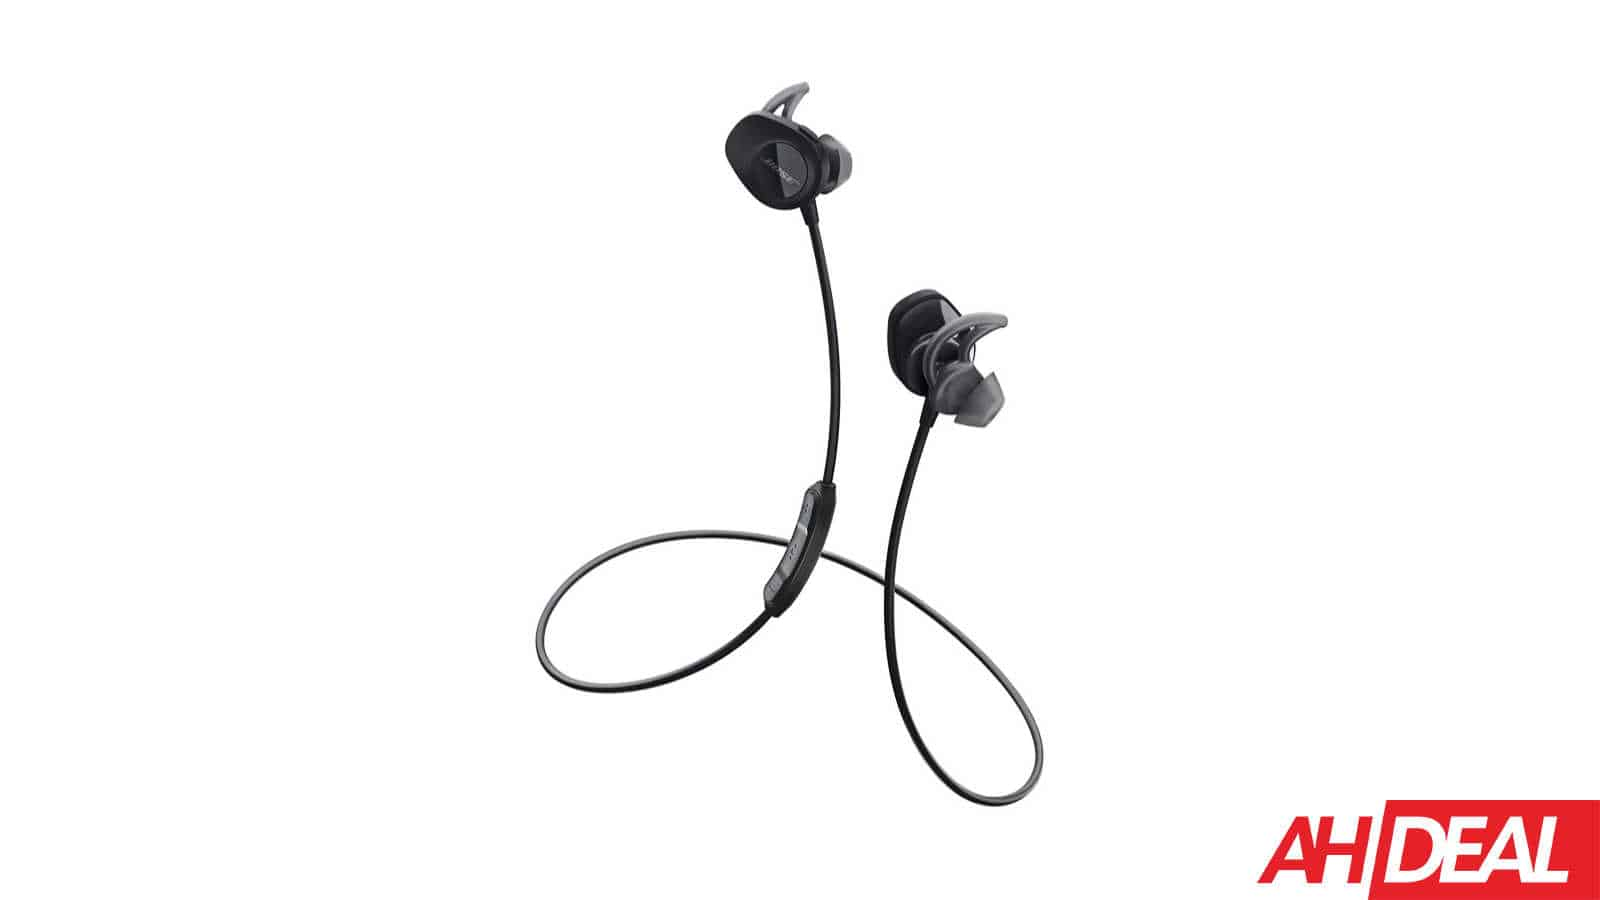 Get Yourself A Pair Of Bose SoundSport Wireless Earbuds